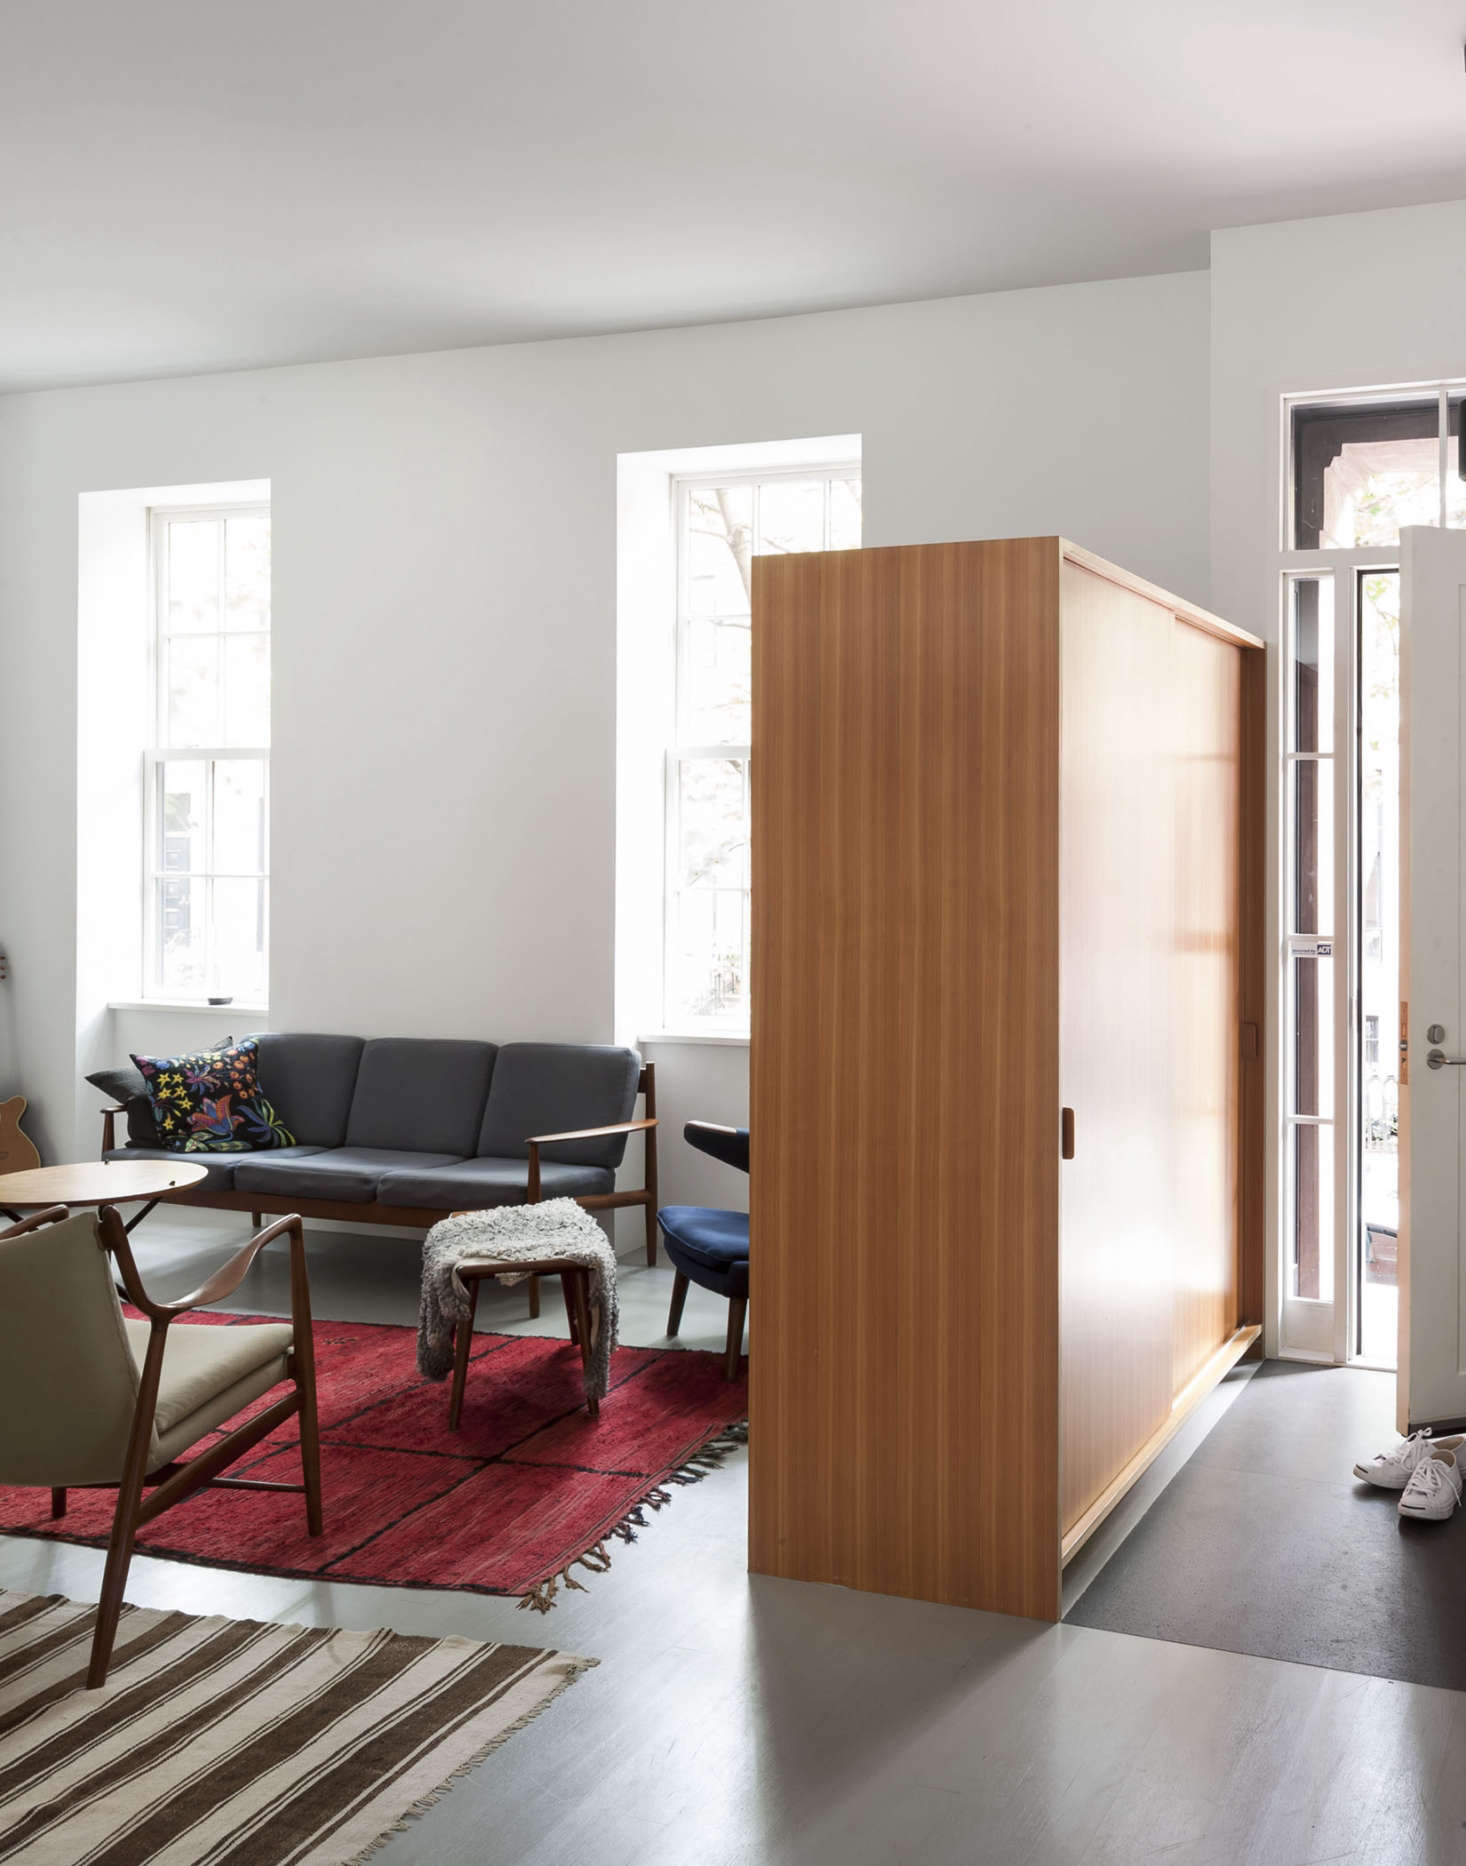 Small-Space Ideas to Steal: 7 Clever Twists on Room Dividers